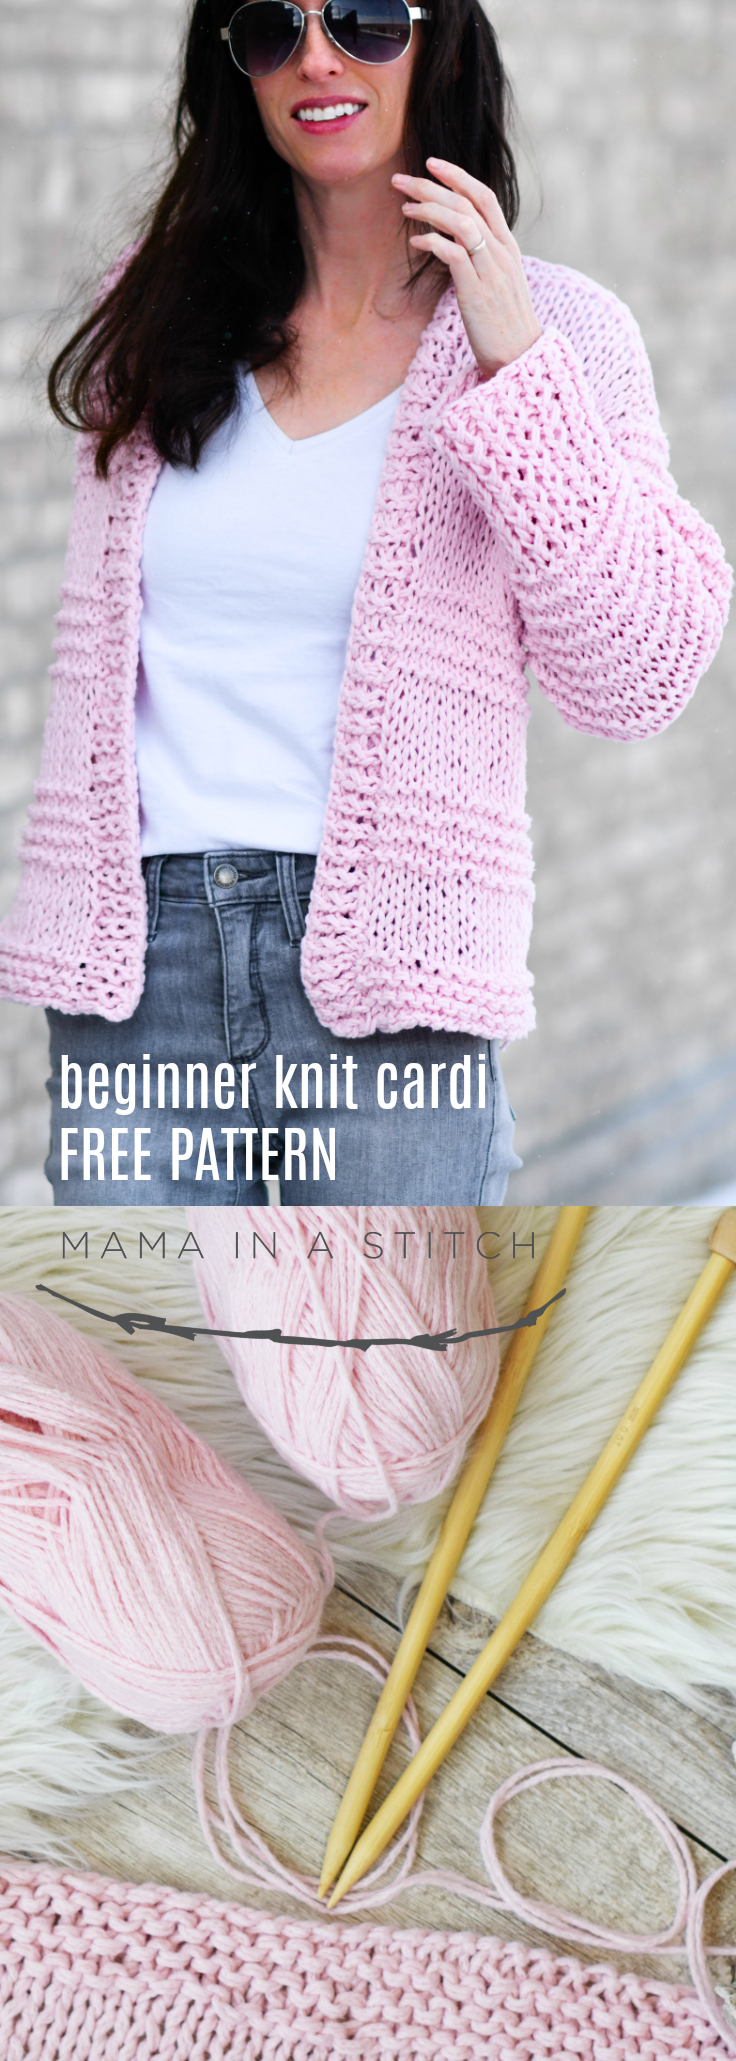 Cardigan Sweater Knitting Pattern Cotton Candy Easy Knit Cardigan Pattern Mama In A Stitch